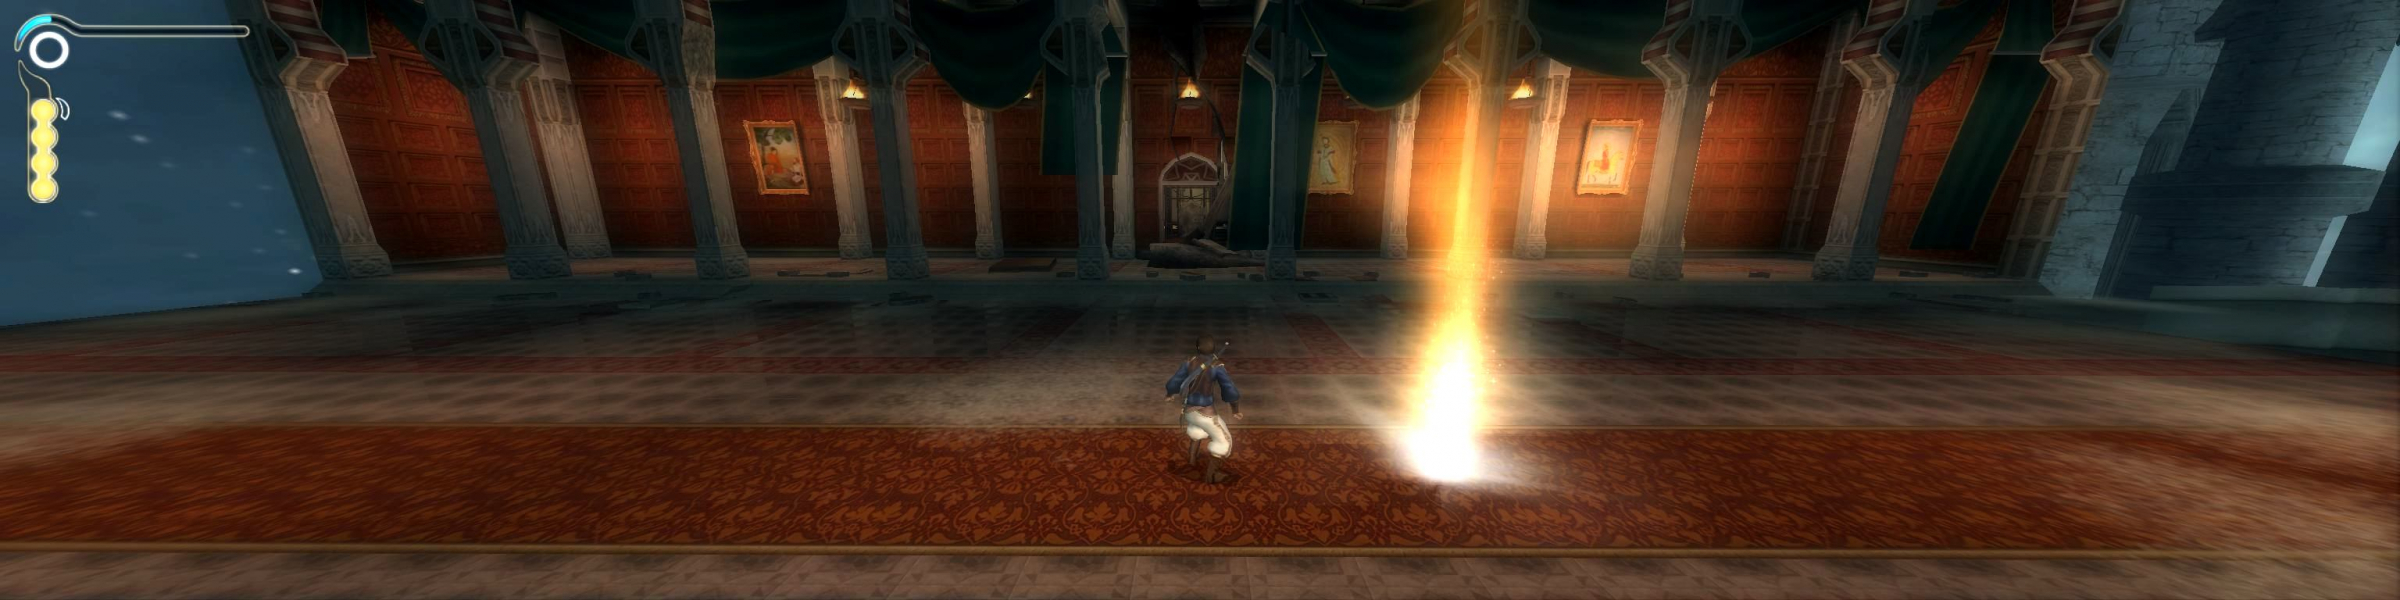 Prince Of Persia The Sands Of Time Wsgf